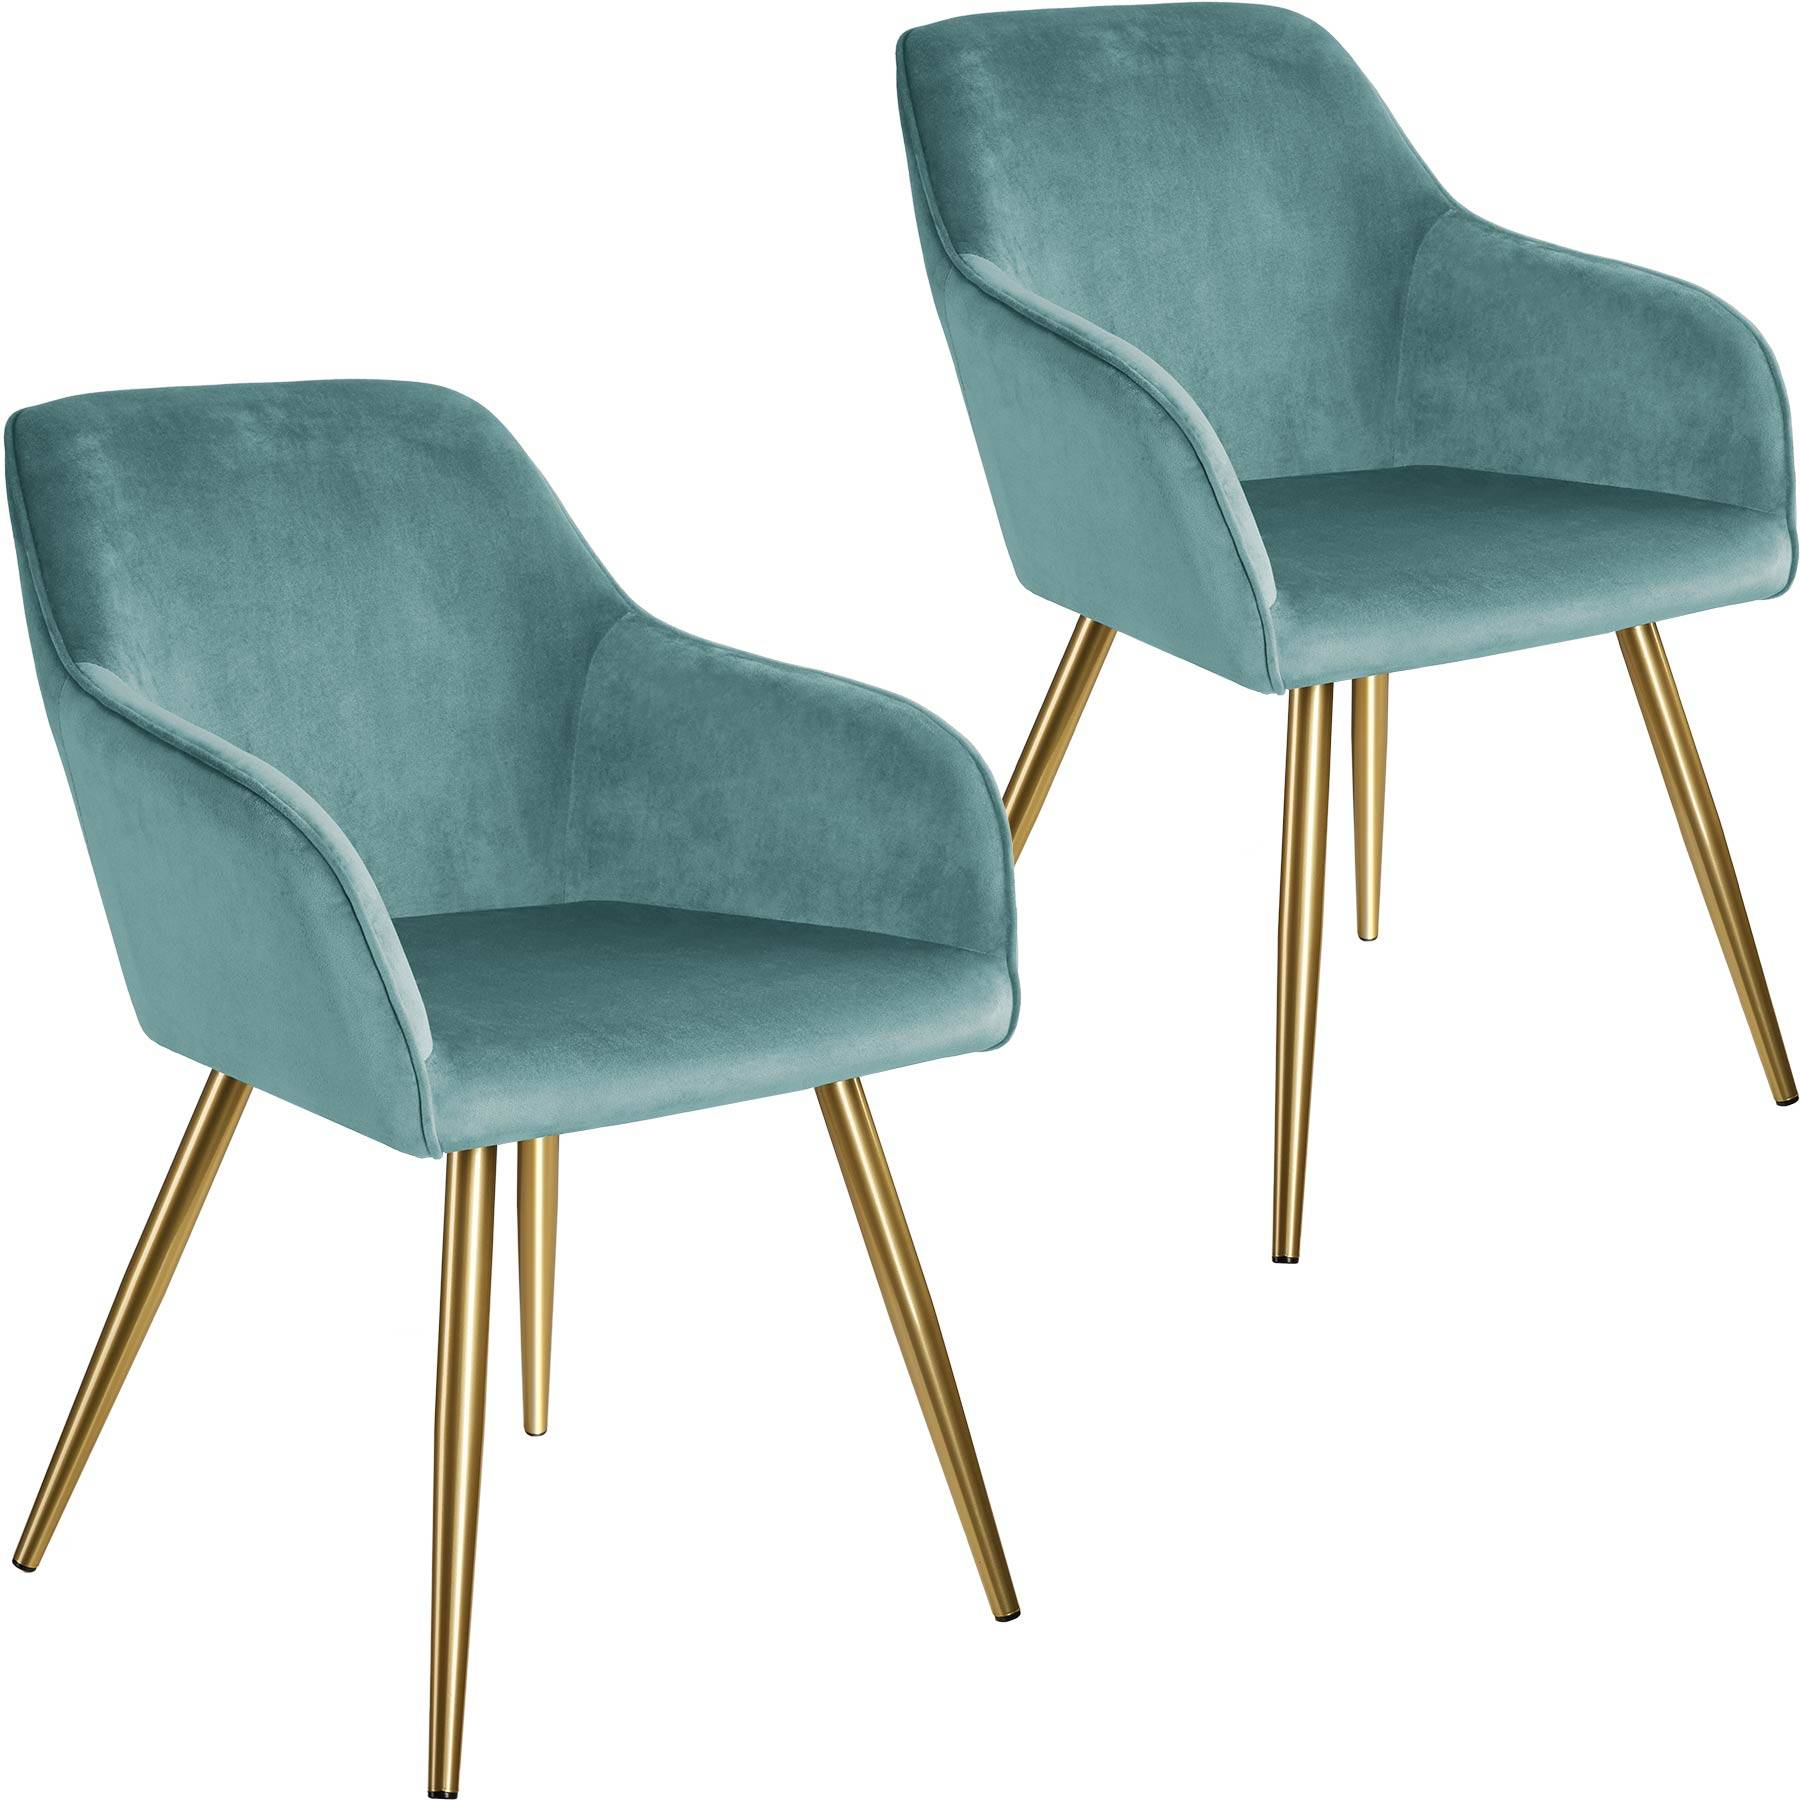 tectake 2 Marilyn Velvet-Look Chairs gold - turquoise/gold